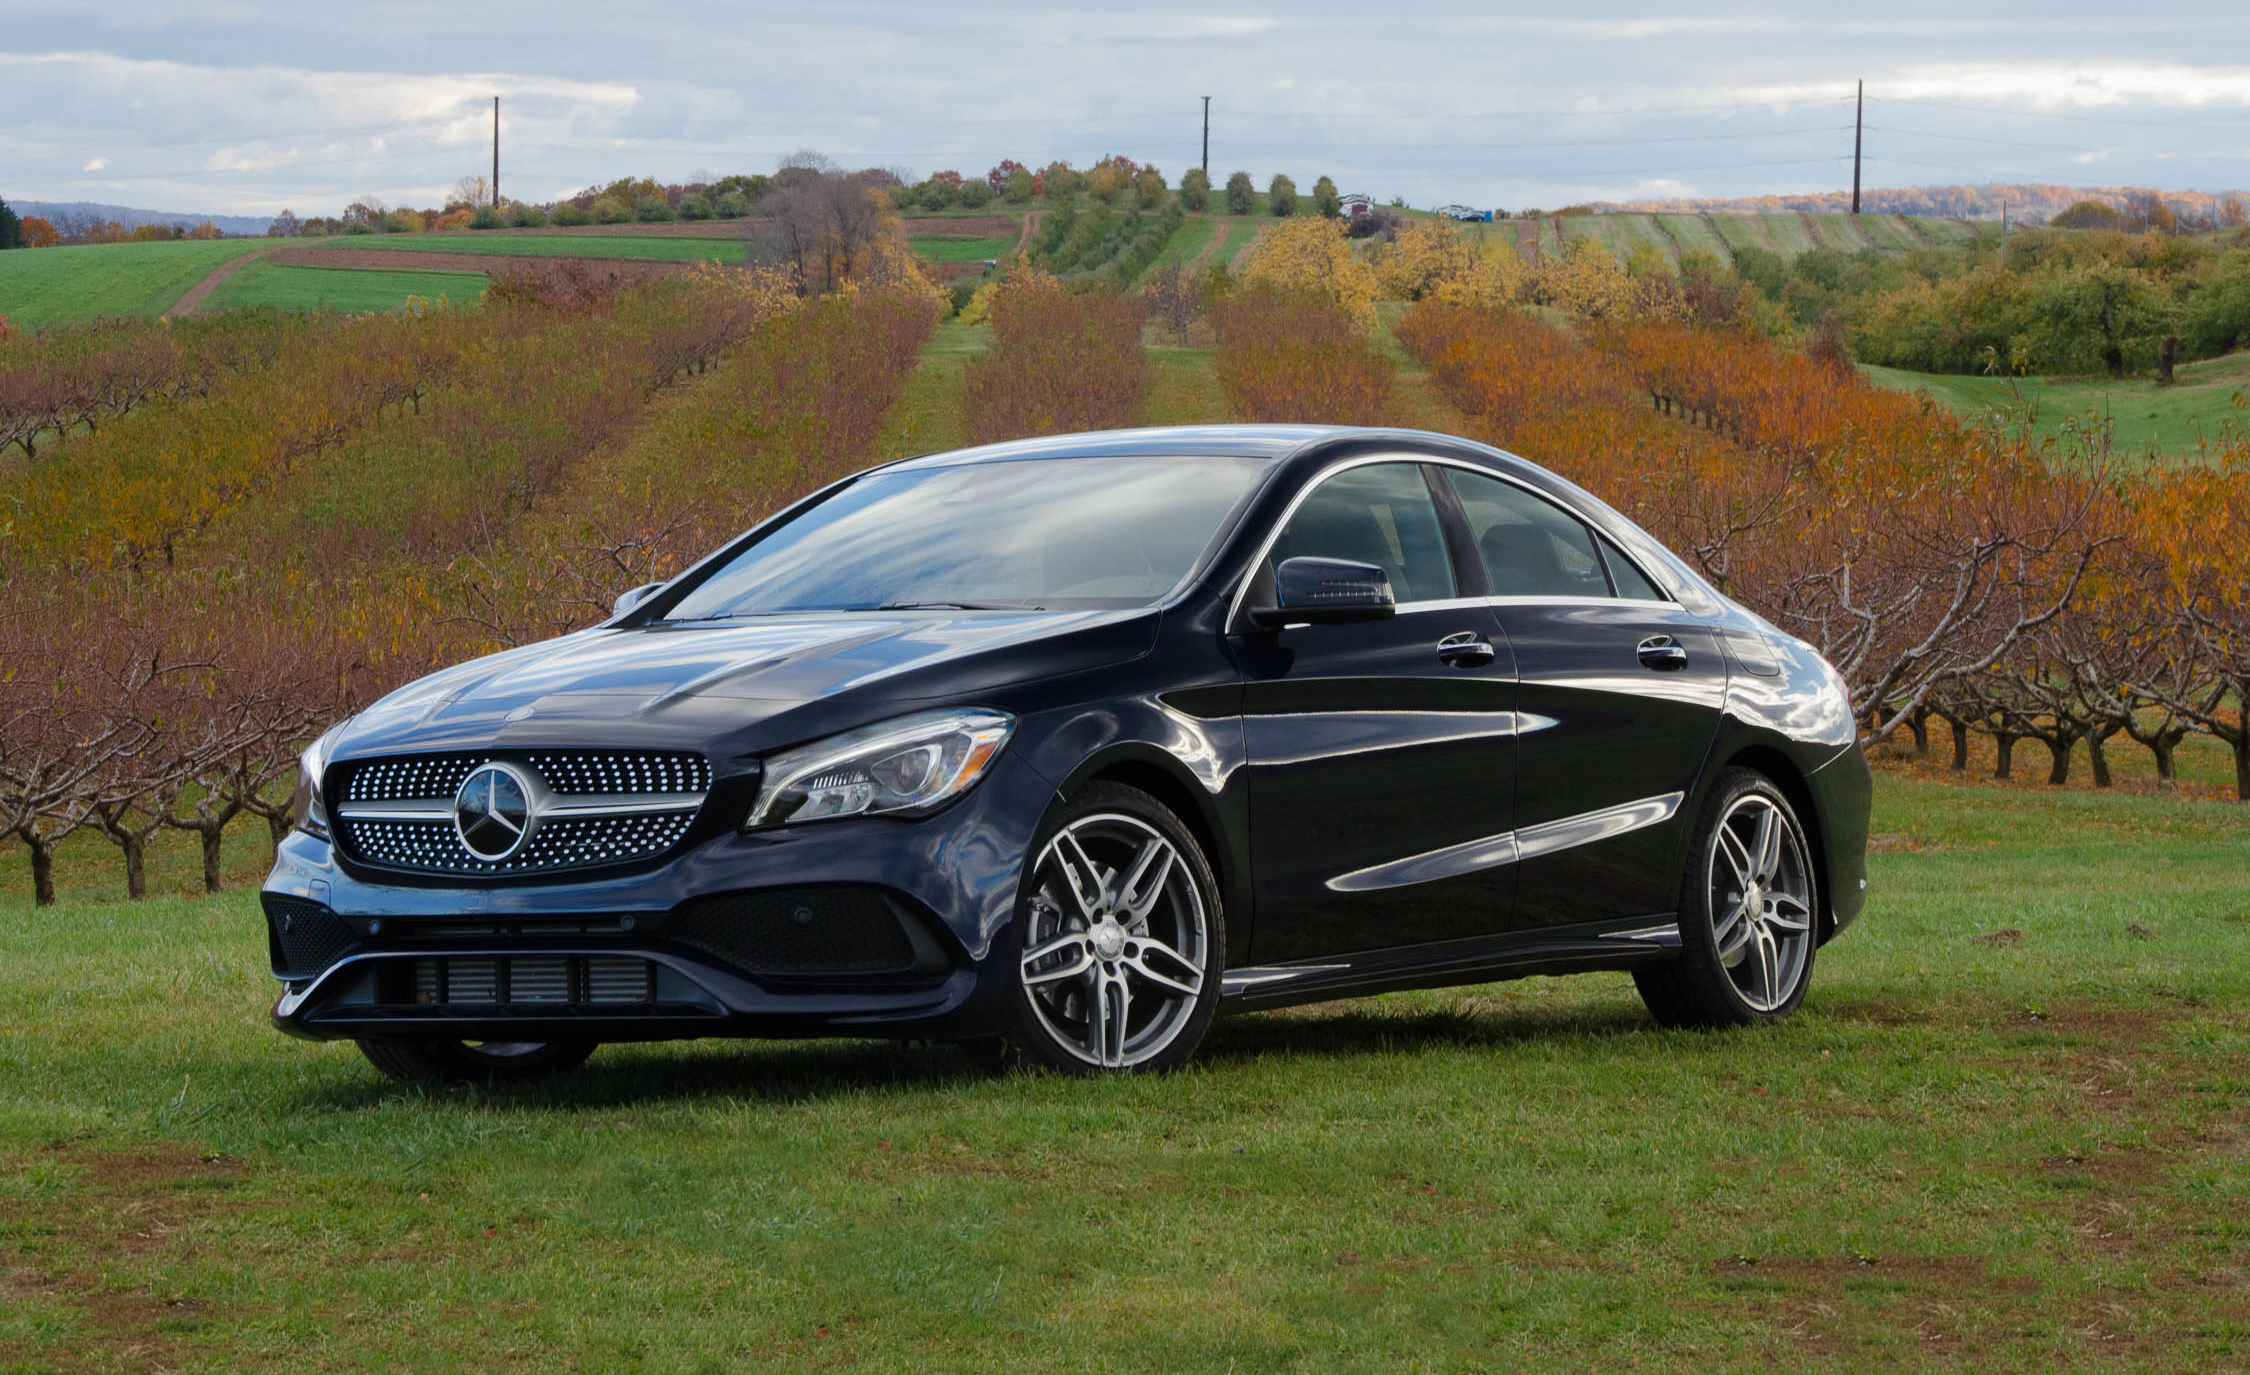 2017 Mercedes Benz CLA250 4MATIC Black Color (Photo 2 of 21)